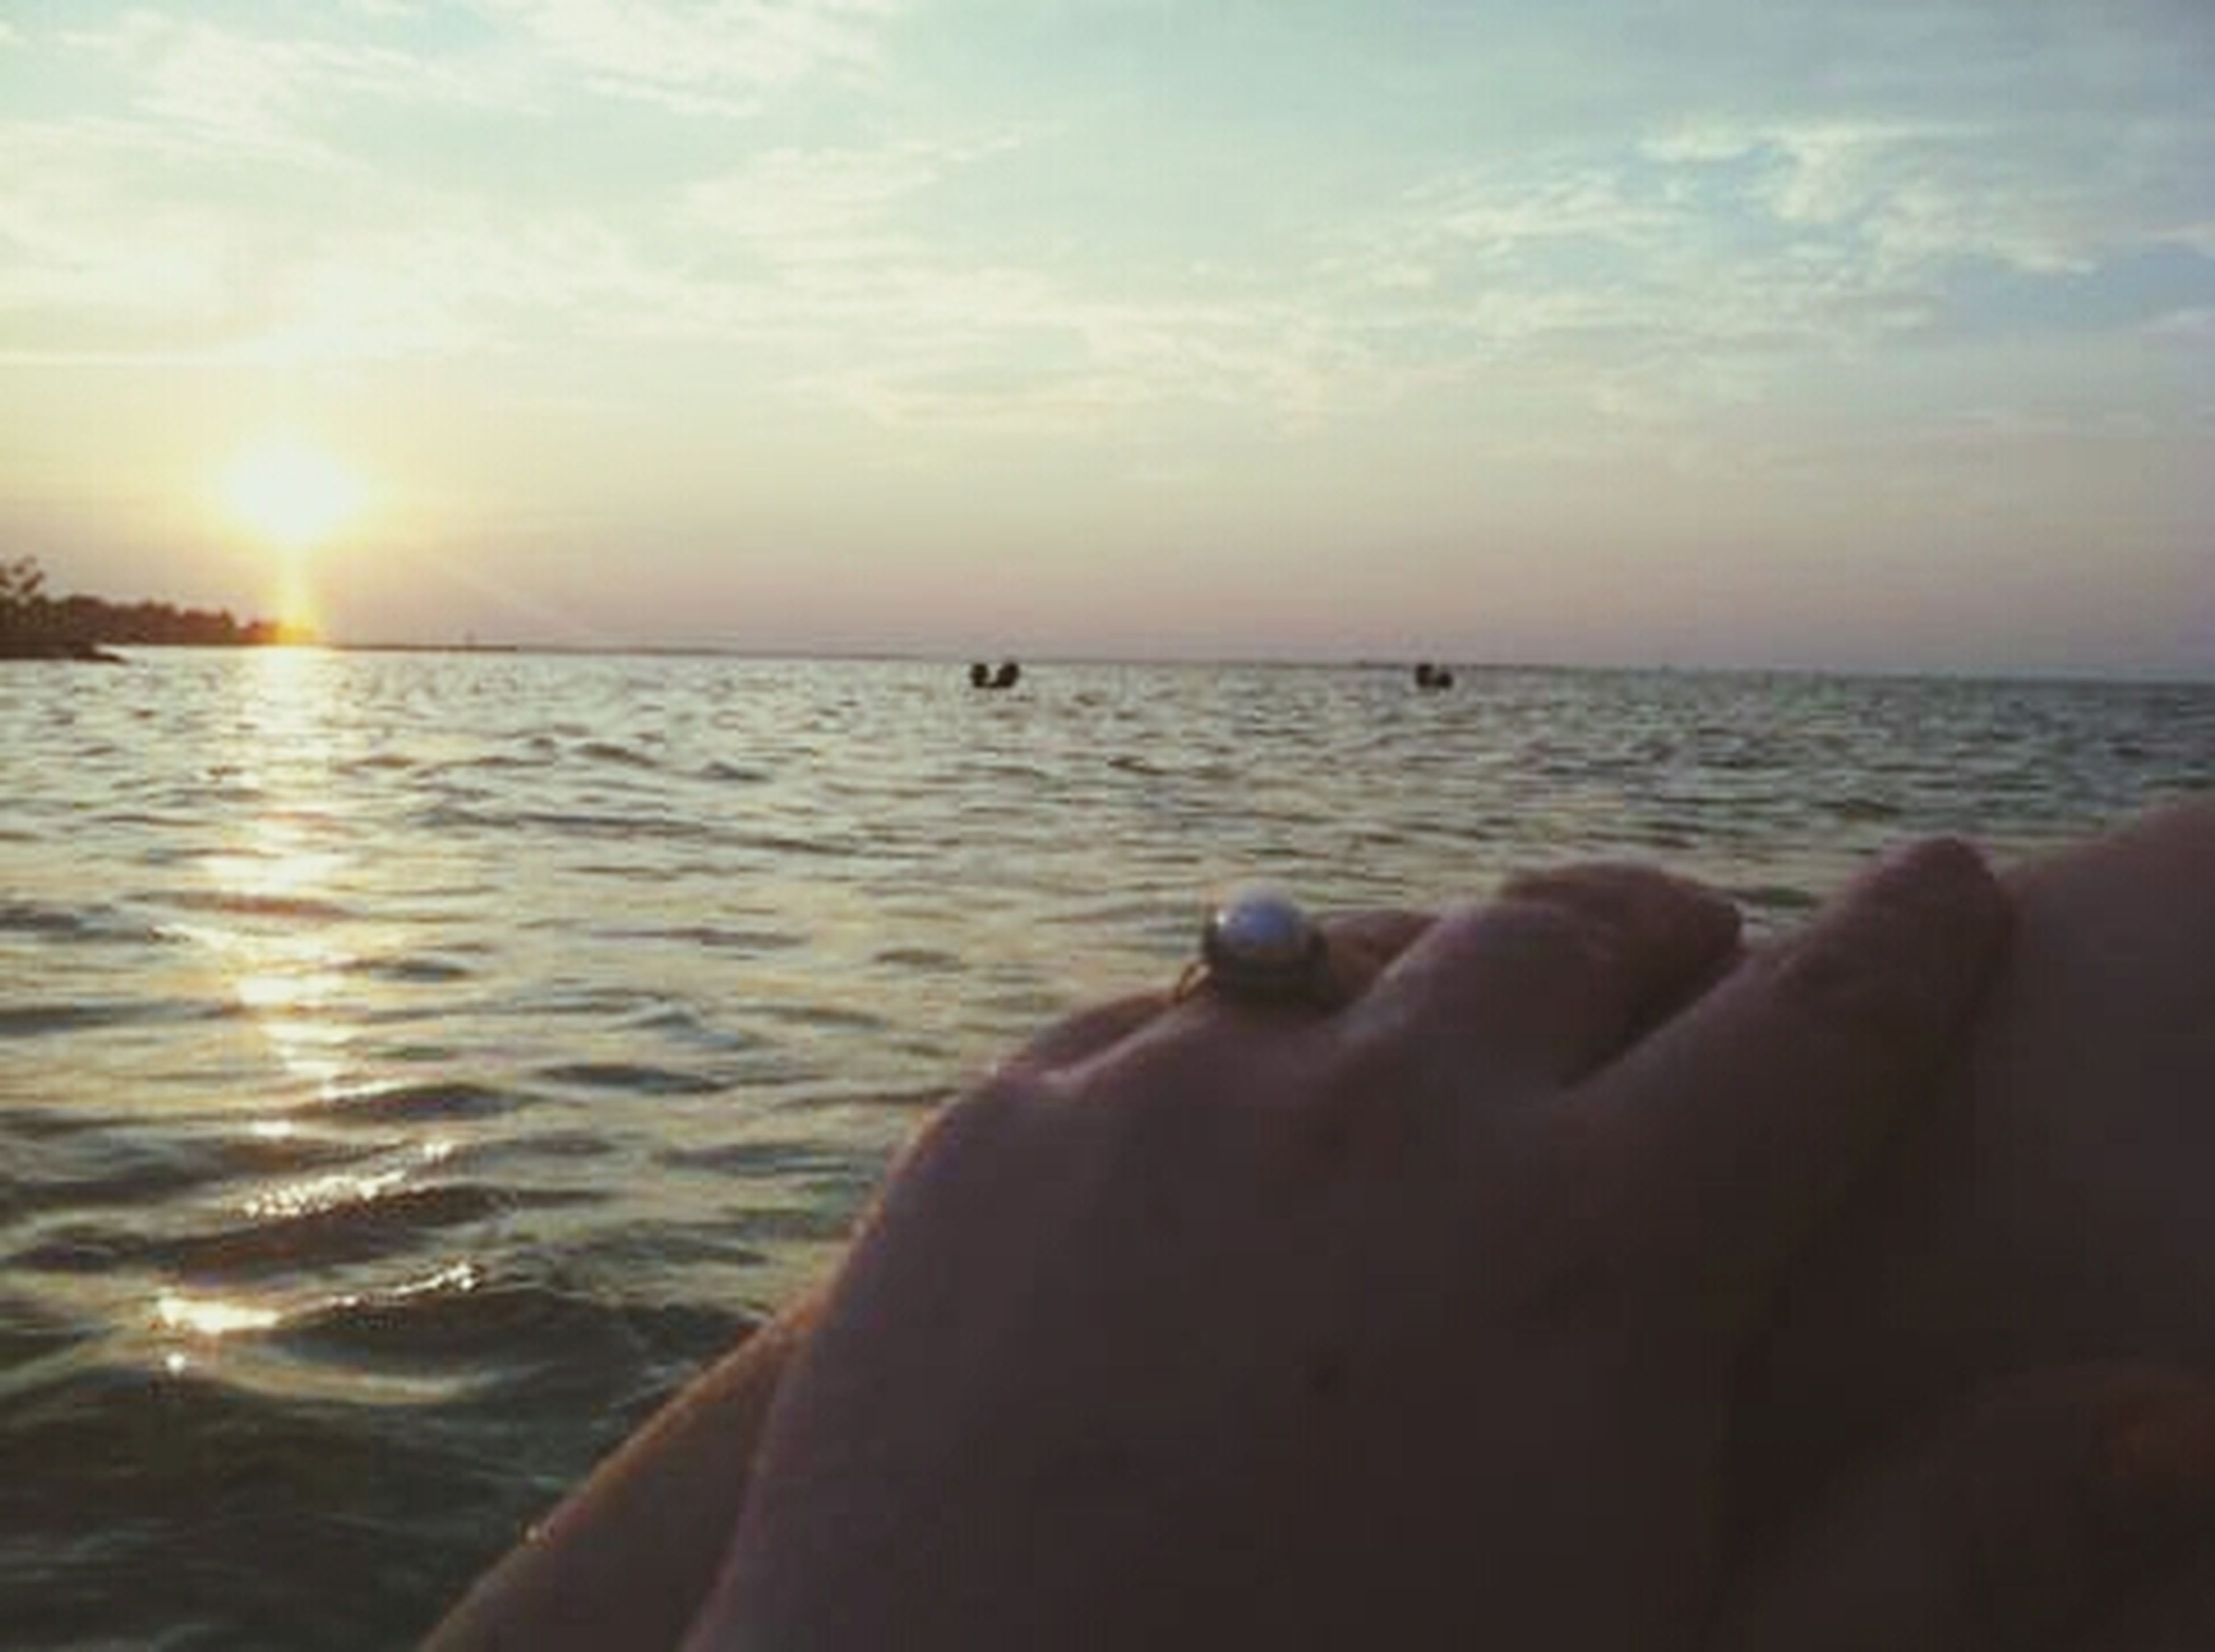 water, sea, horizon over water, sky, person, sunset, part of, unrecognizable person, personal perspective, sun, lifestyles, leisure activity, scenics, cropped, beauty in nature, sunlight, nature